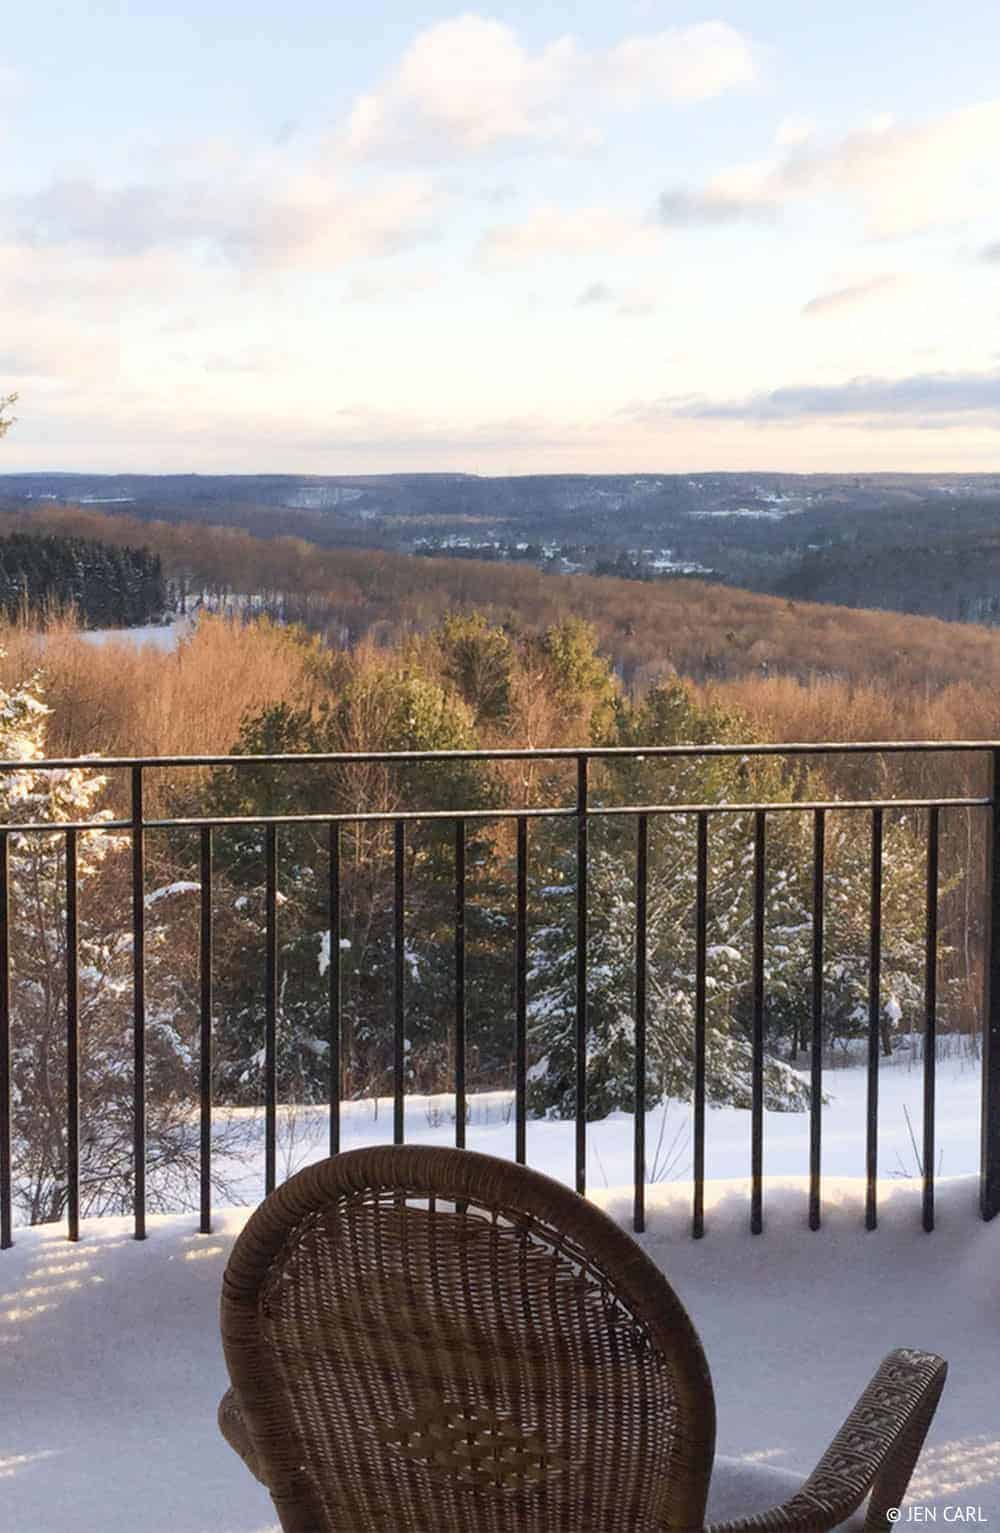 The French Manor Inn and Spa - A Couples Getaway in the Heart of the Poconos | Travel | Pennsylvania | Poconos | Mountain | USA